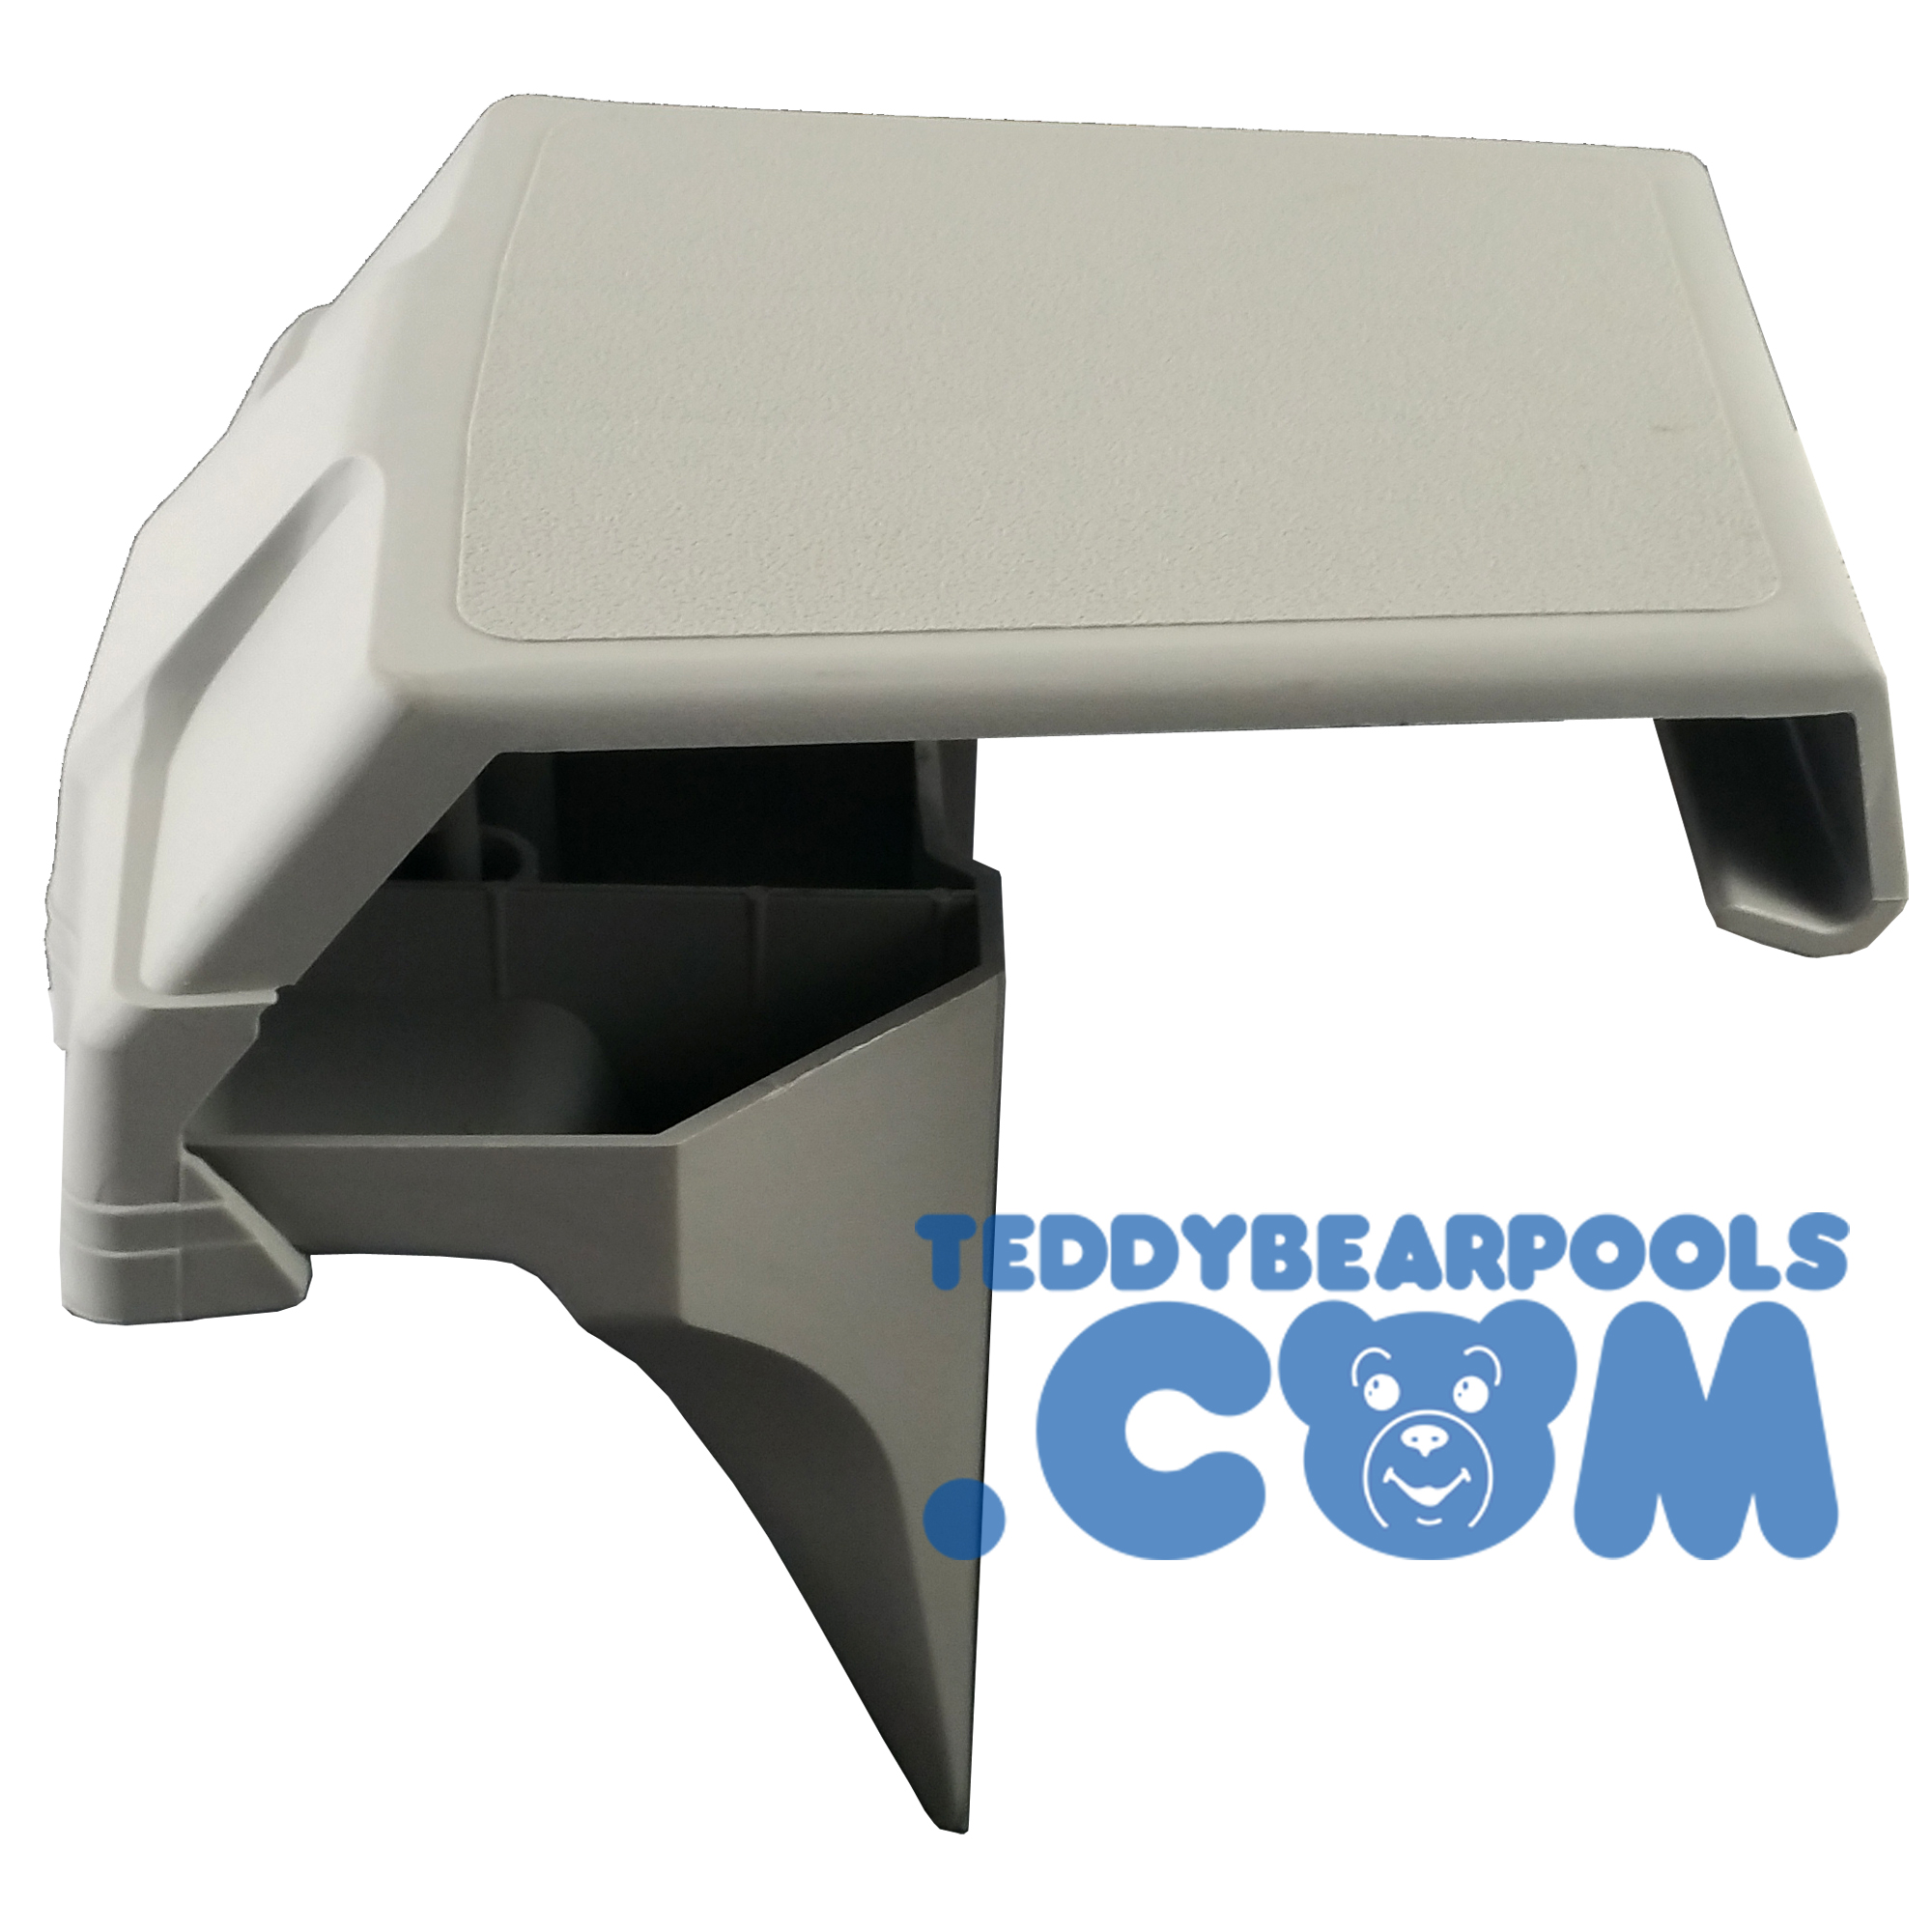 Jacuzzi Pool Top Caps Top Cap For Fusion Artesian Pools Top Bottom Gray Teddy